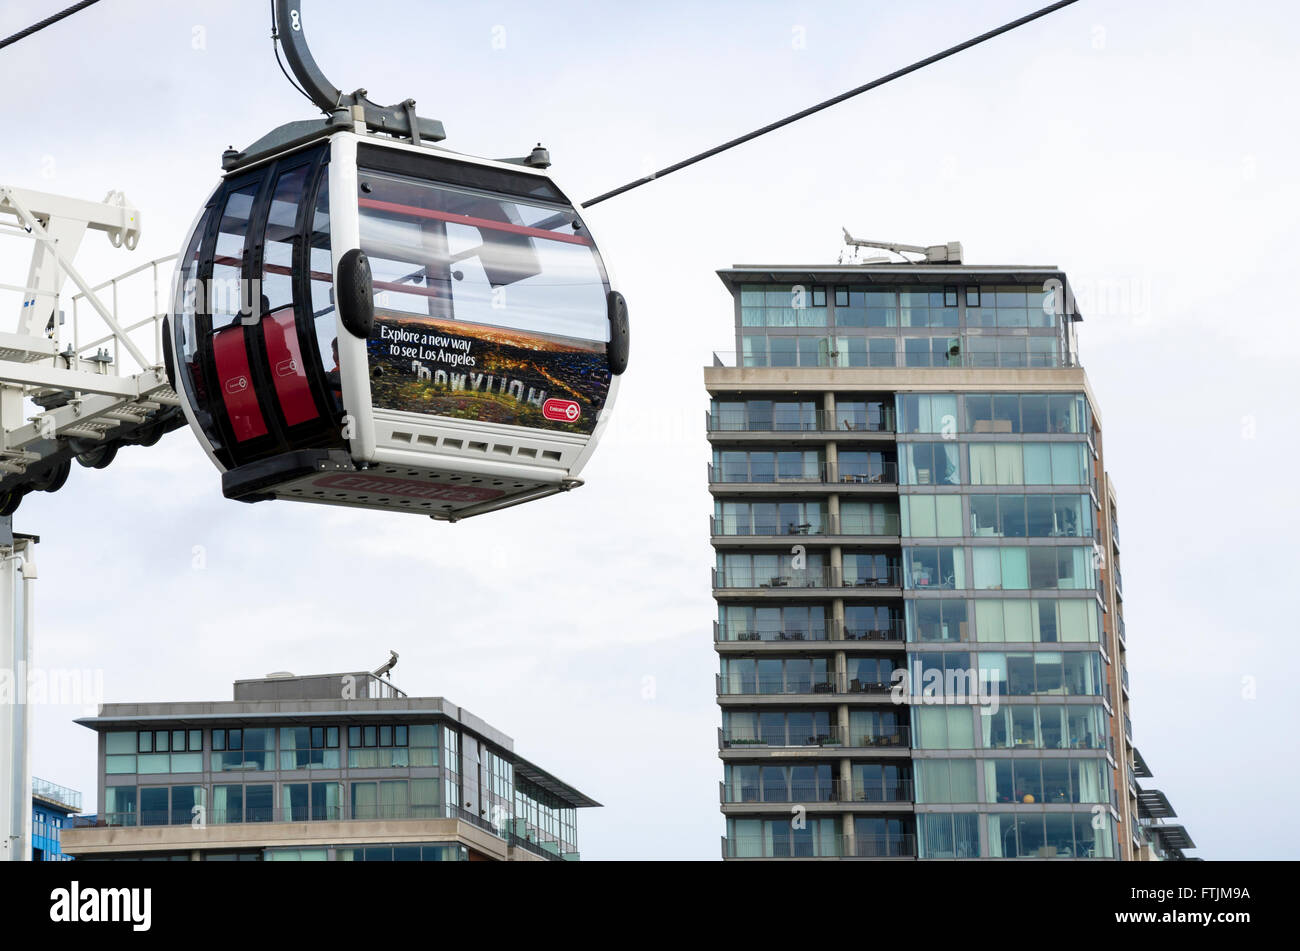 A cable car on the Emirates Air Line from Royal Victoria Docks to the O2 Dome goes past a tower block. - Stock Image